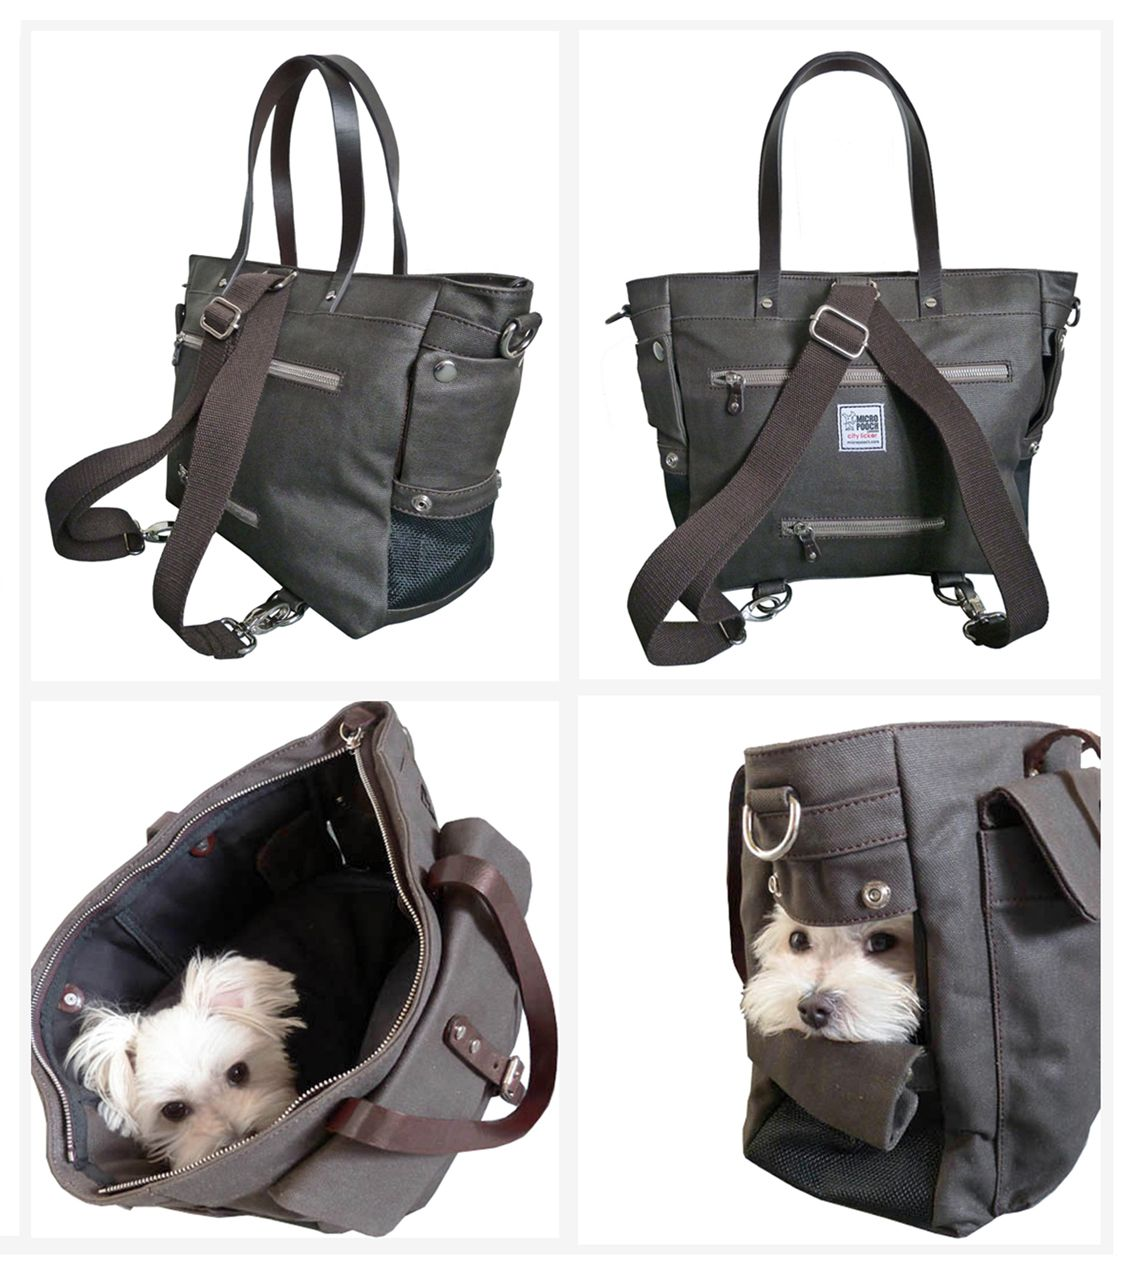 Dog Handbag By Micro Pooch Stylish City Pet Carrier Small